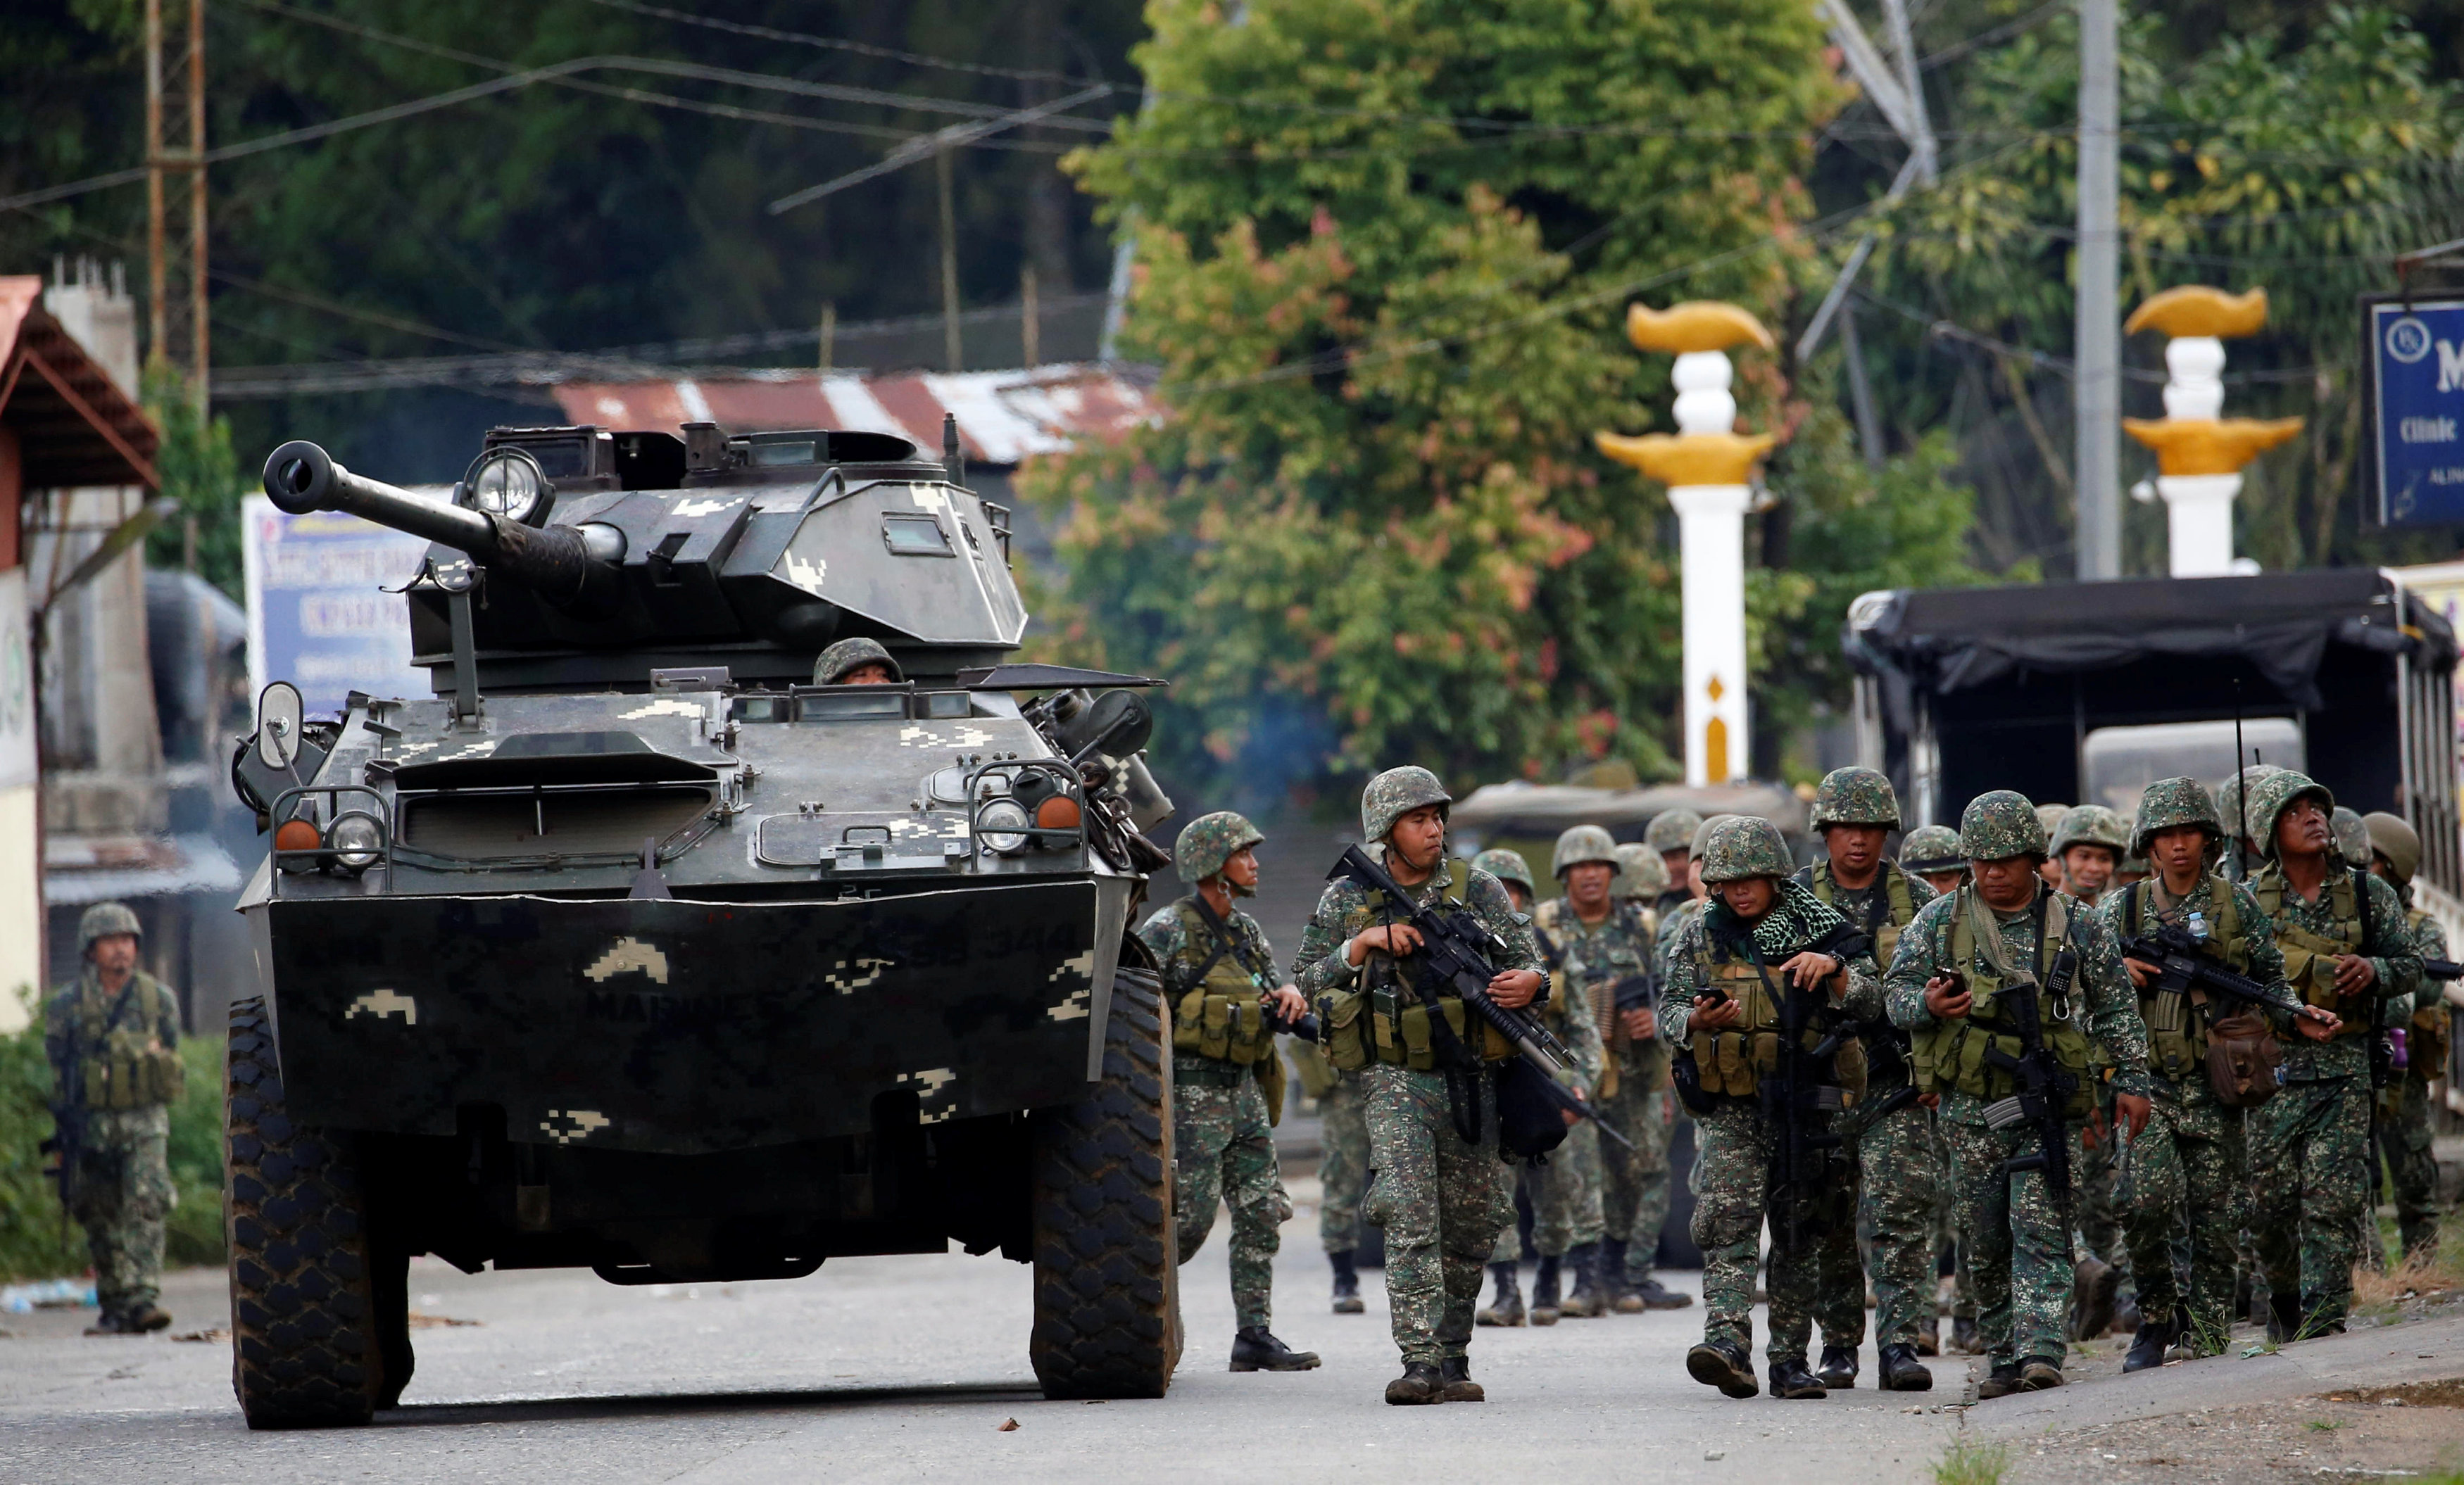 Members of Philippine Marines walk next to an armoured fighting vehicle (AFV) as they advance their position in Marawi City, Philippines May 28